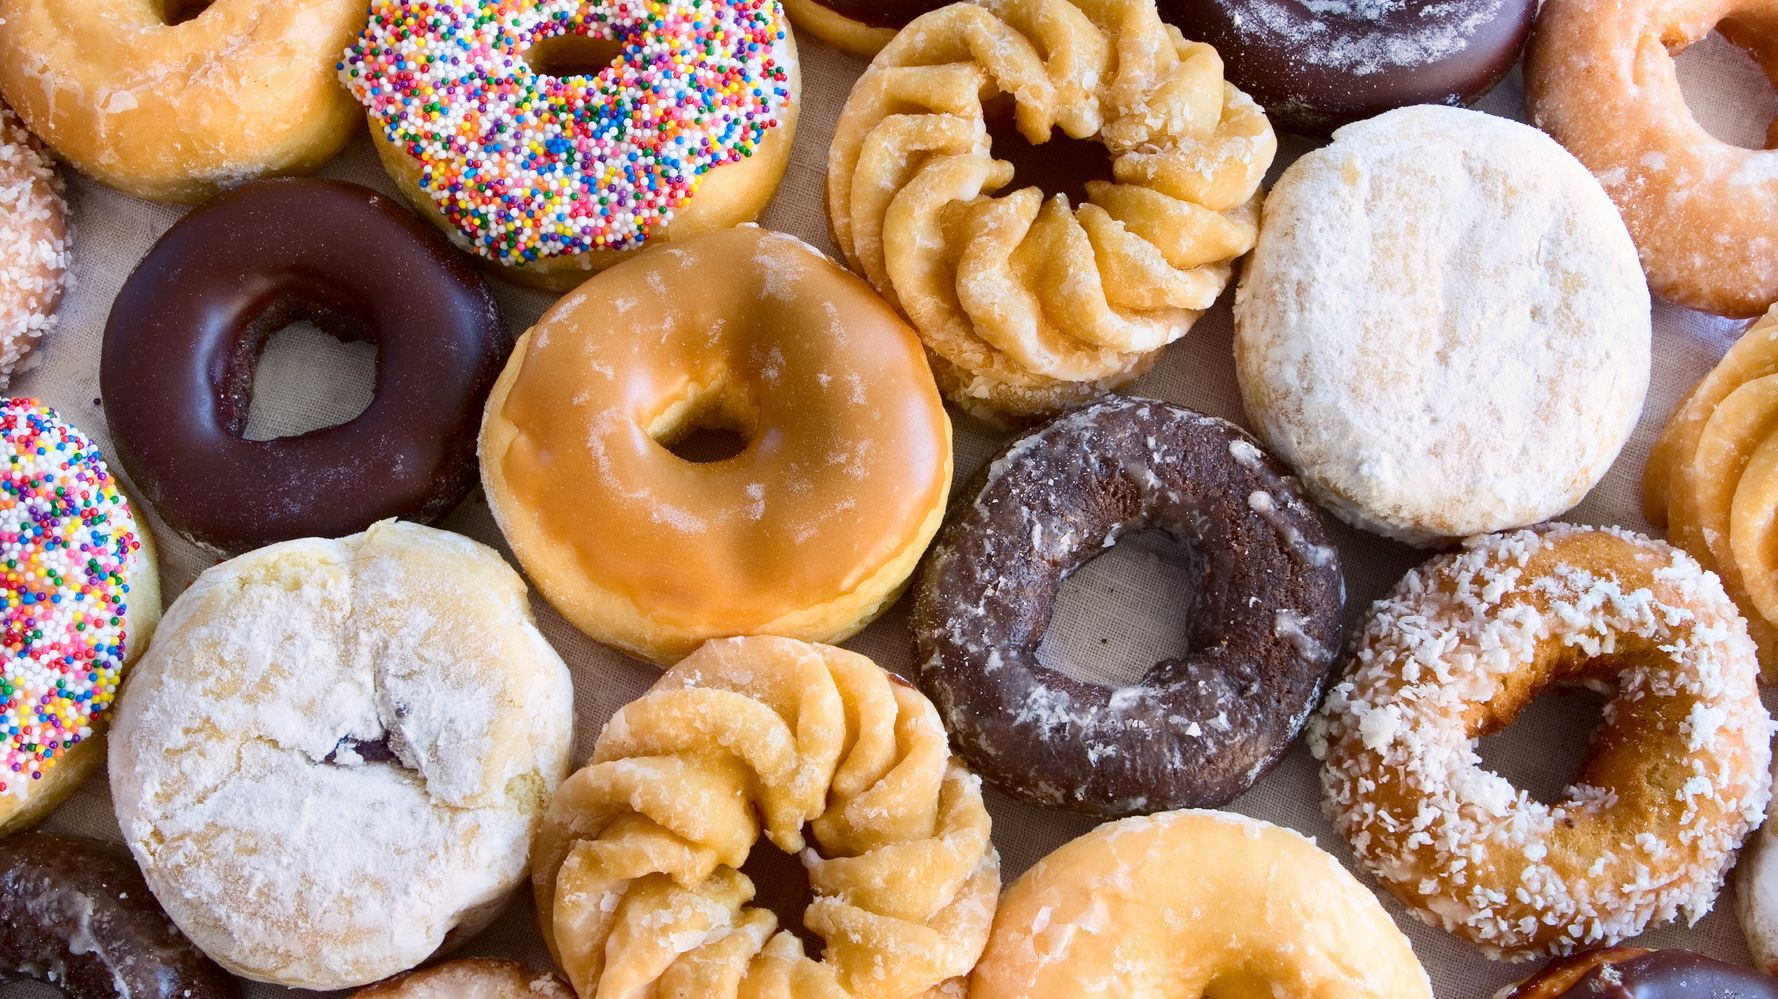 Which Is The Superior Donut: A Cake Donut Or A Yeast Donut